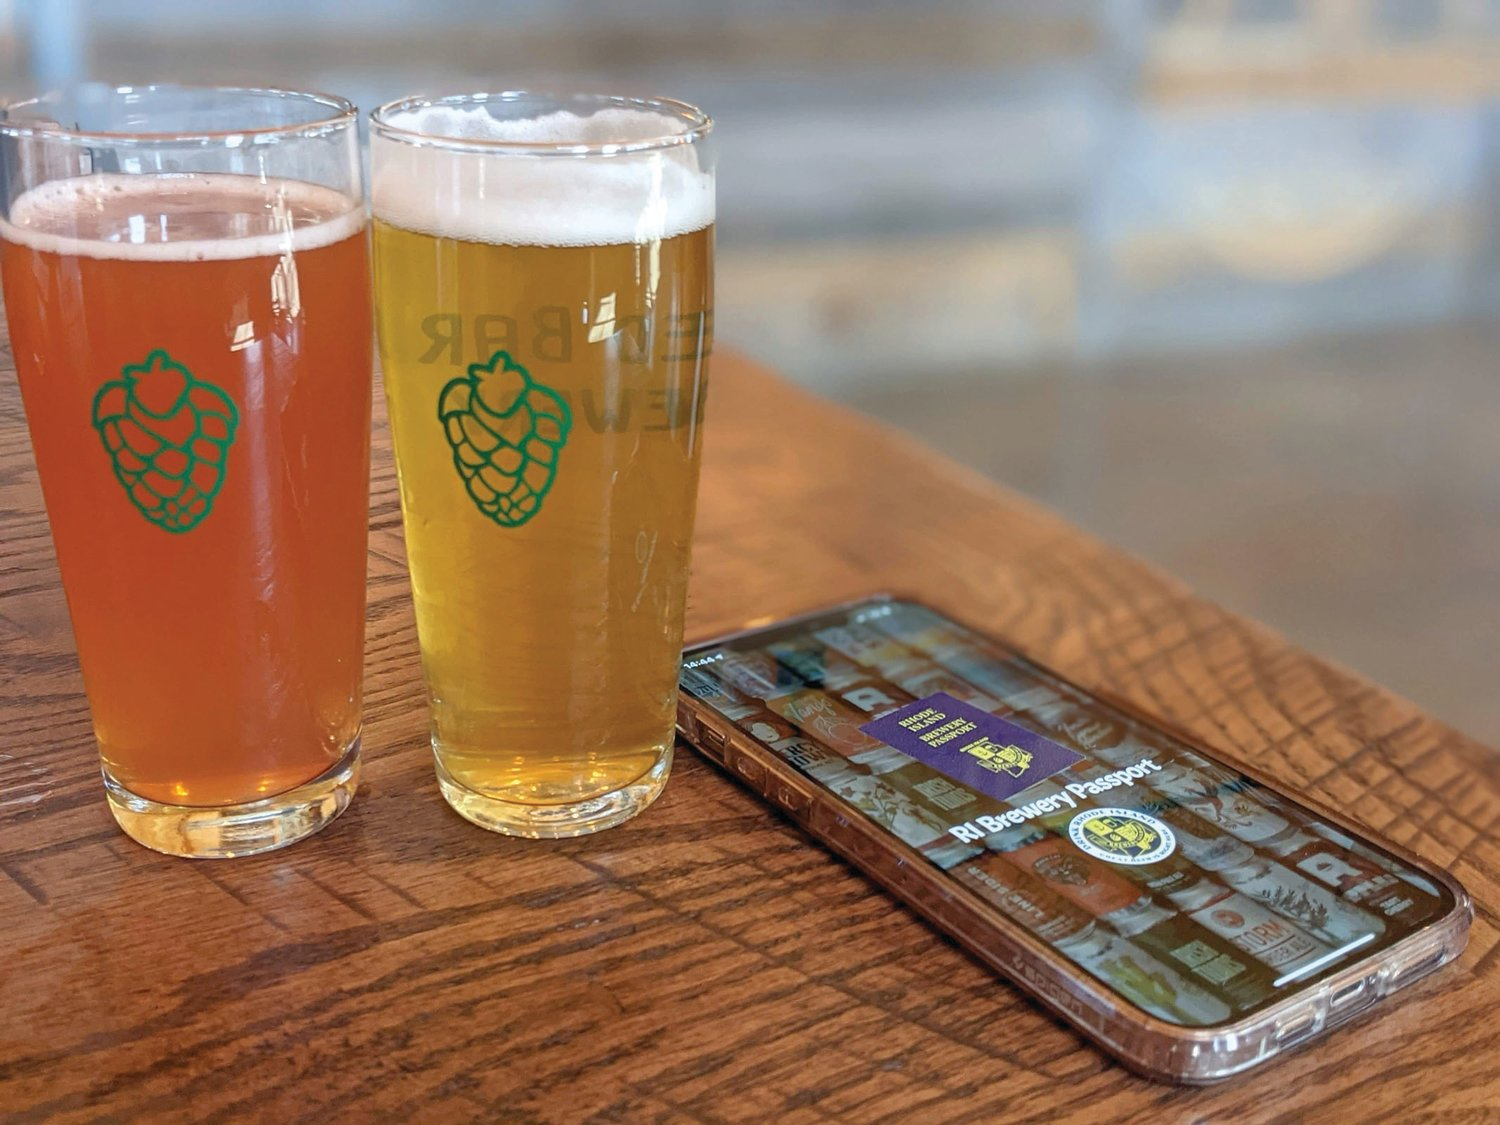 ON YOUR DEVICE: The Brewery Passport is available for iOS and Android services, and can be found through the Guild's website, ribrewersguild.org.